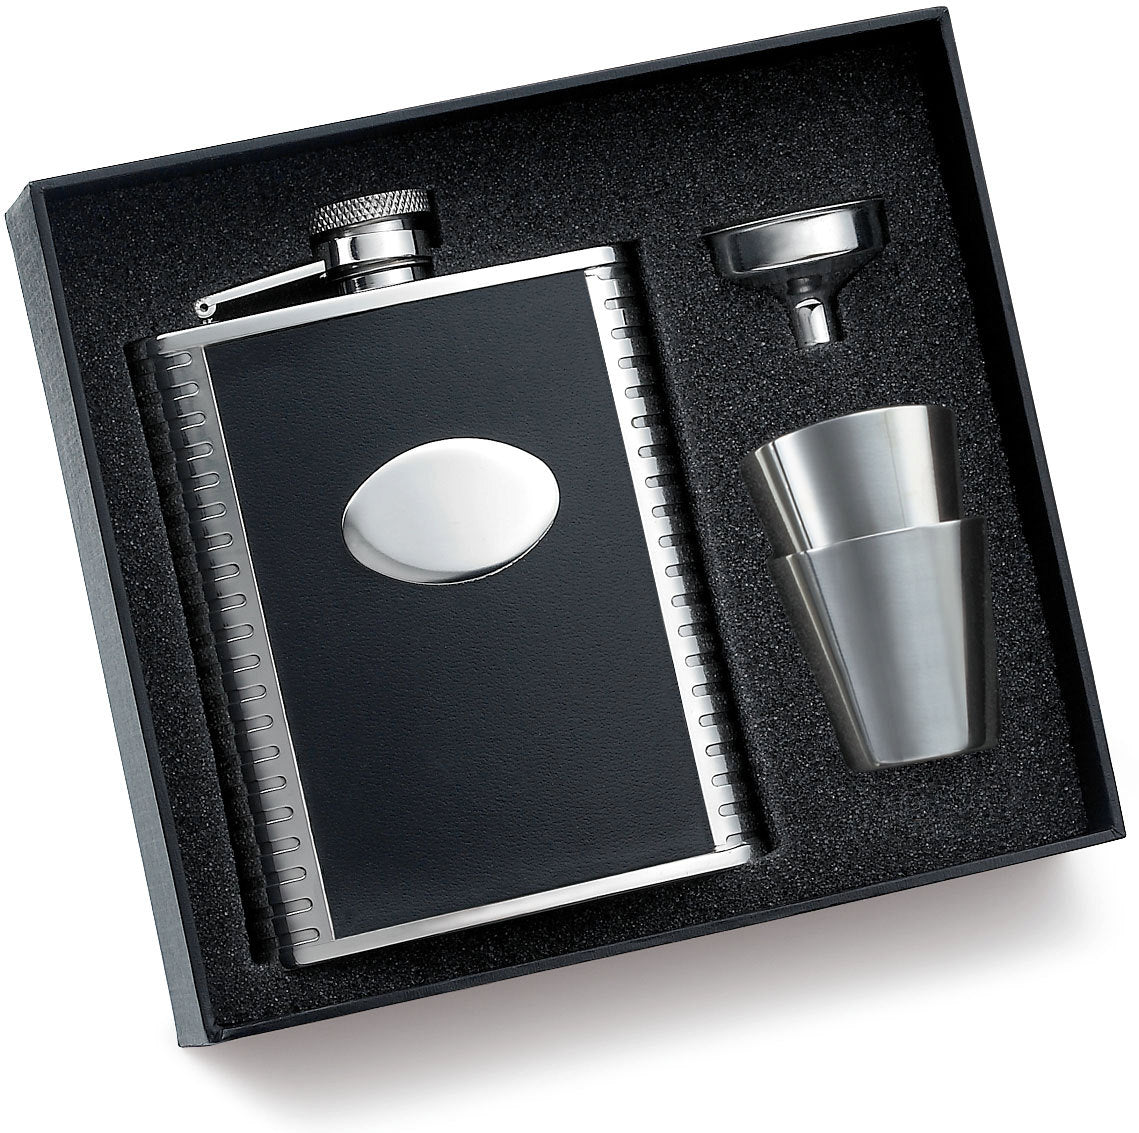 Personalized Flask Set - Groomsmen Gift with Black Leather Flask with 2 shooters and funnel